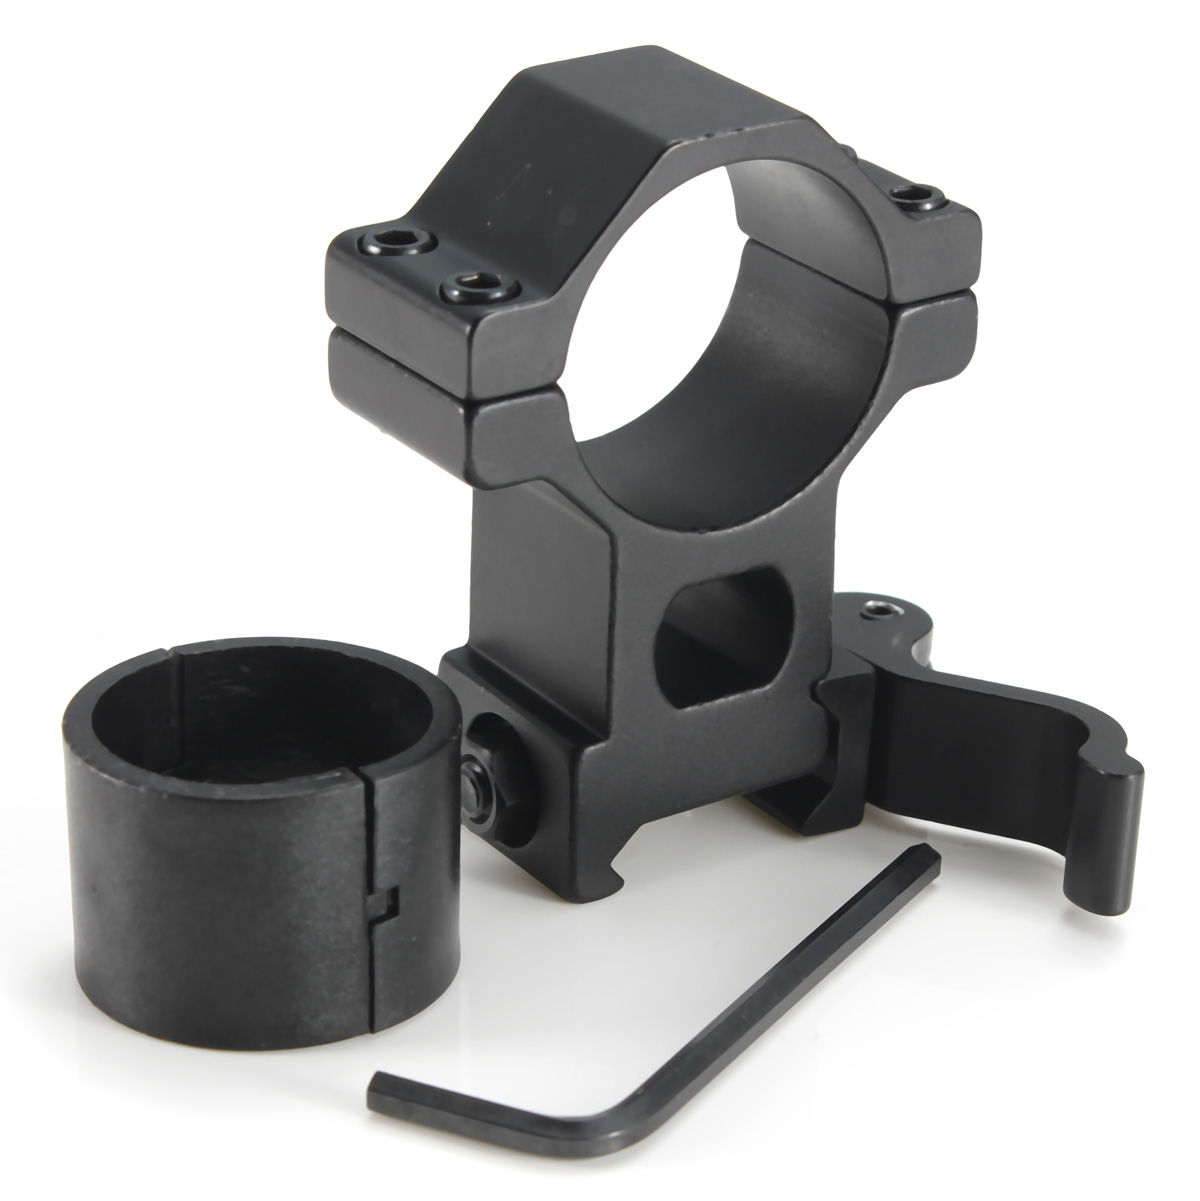 High quality Tactical High Profile 30mm Scope Rings Weaver Picatinny Rail Mount For Rifle+25mm Scope Ring Adapter+Wrench